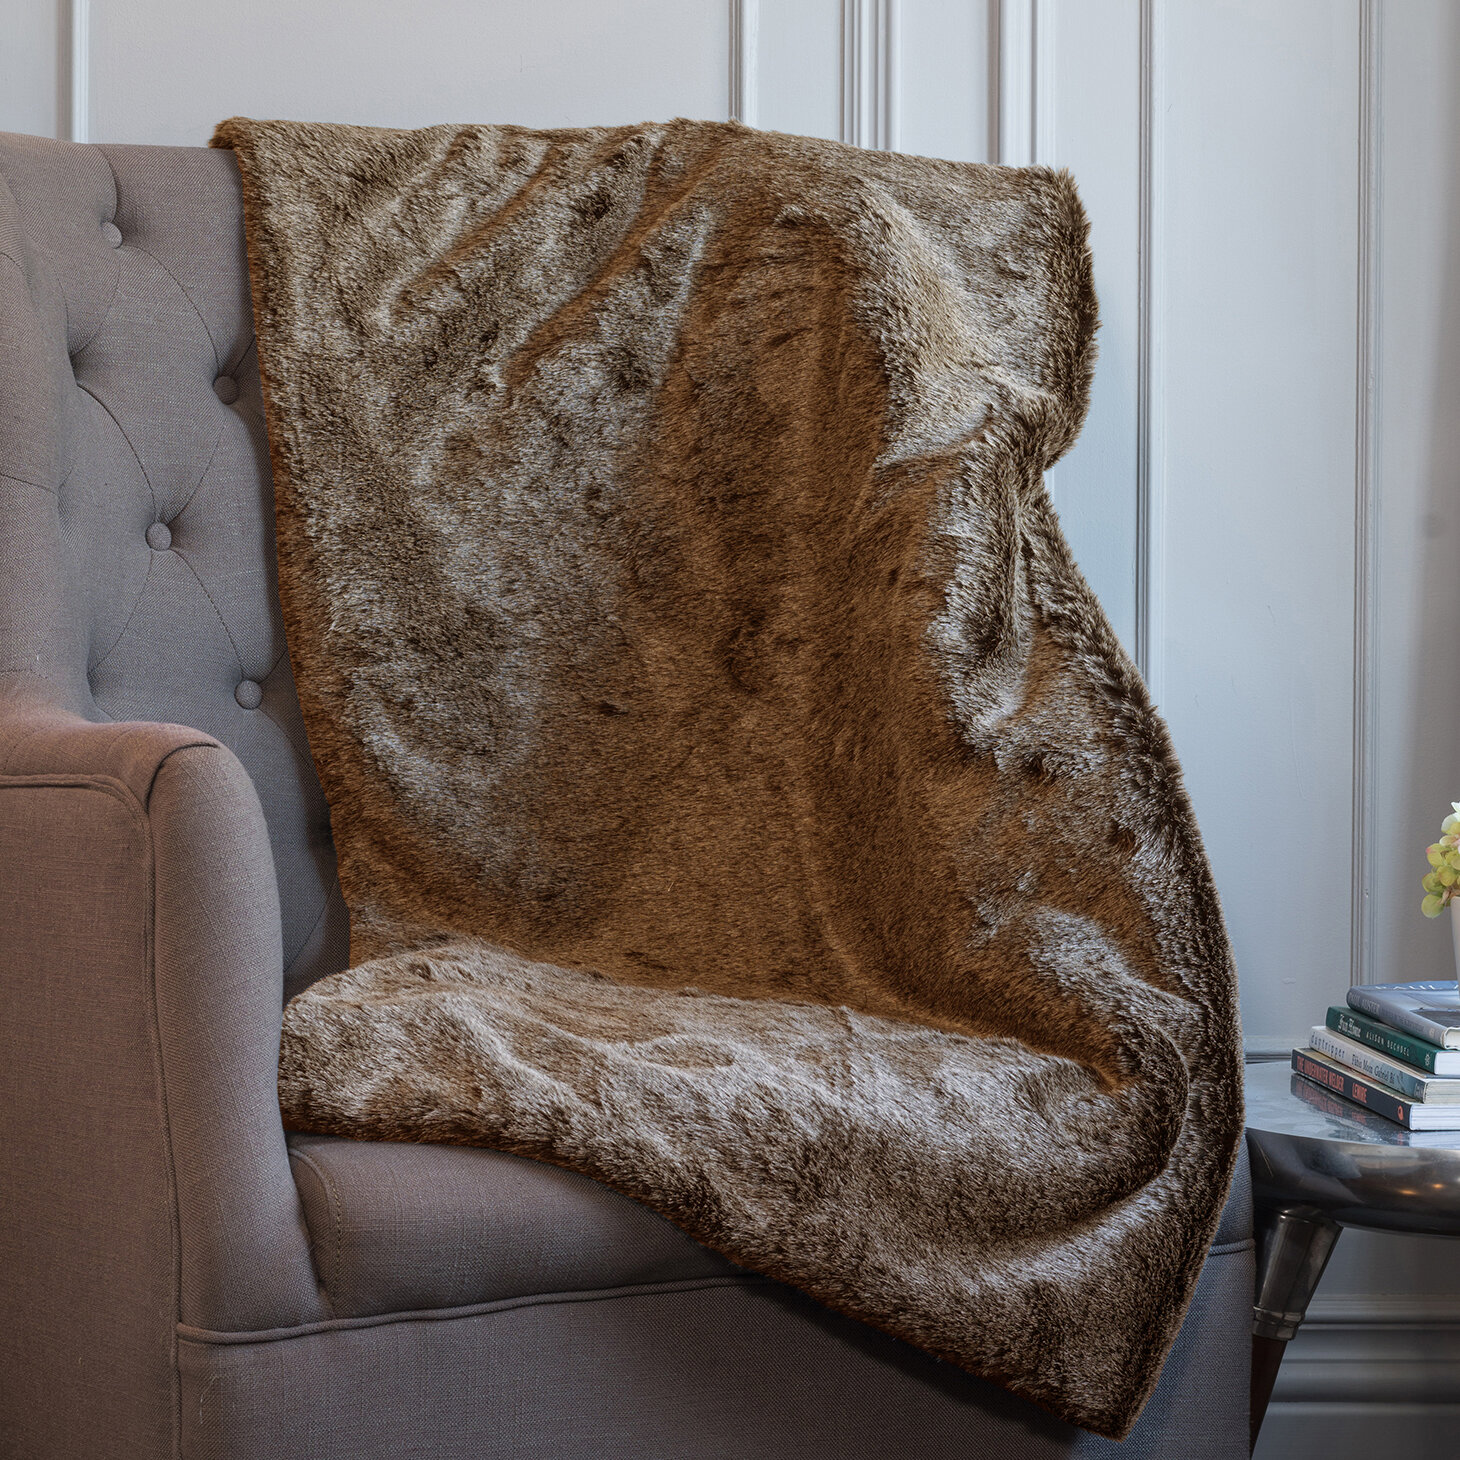 Union Rustic Meda Ultra Plush Soft Faux Fur Throw Wayfair